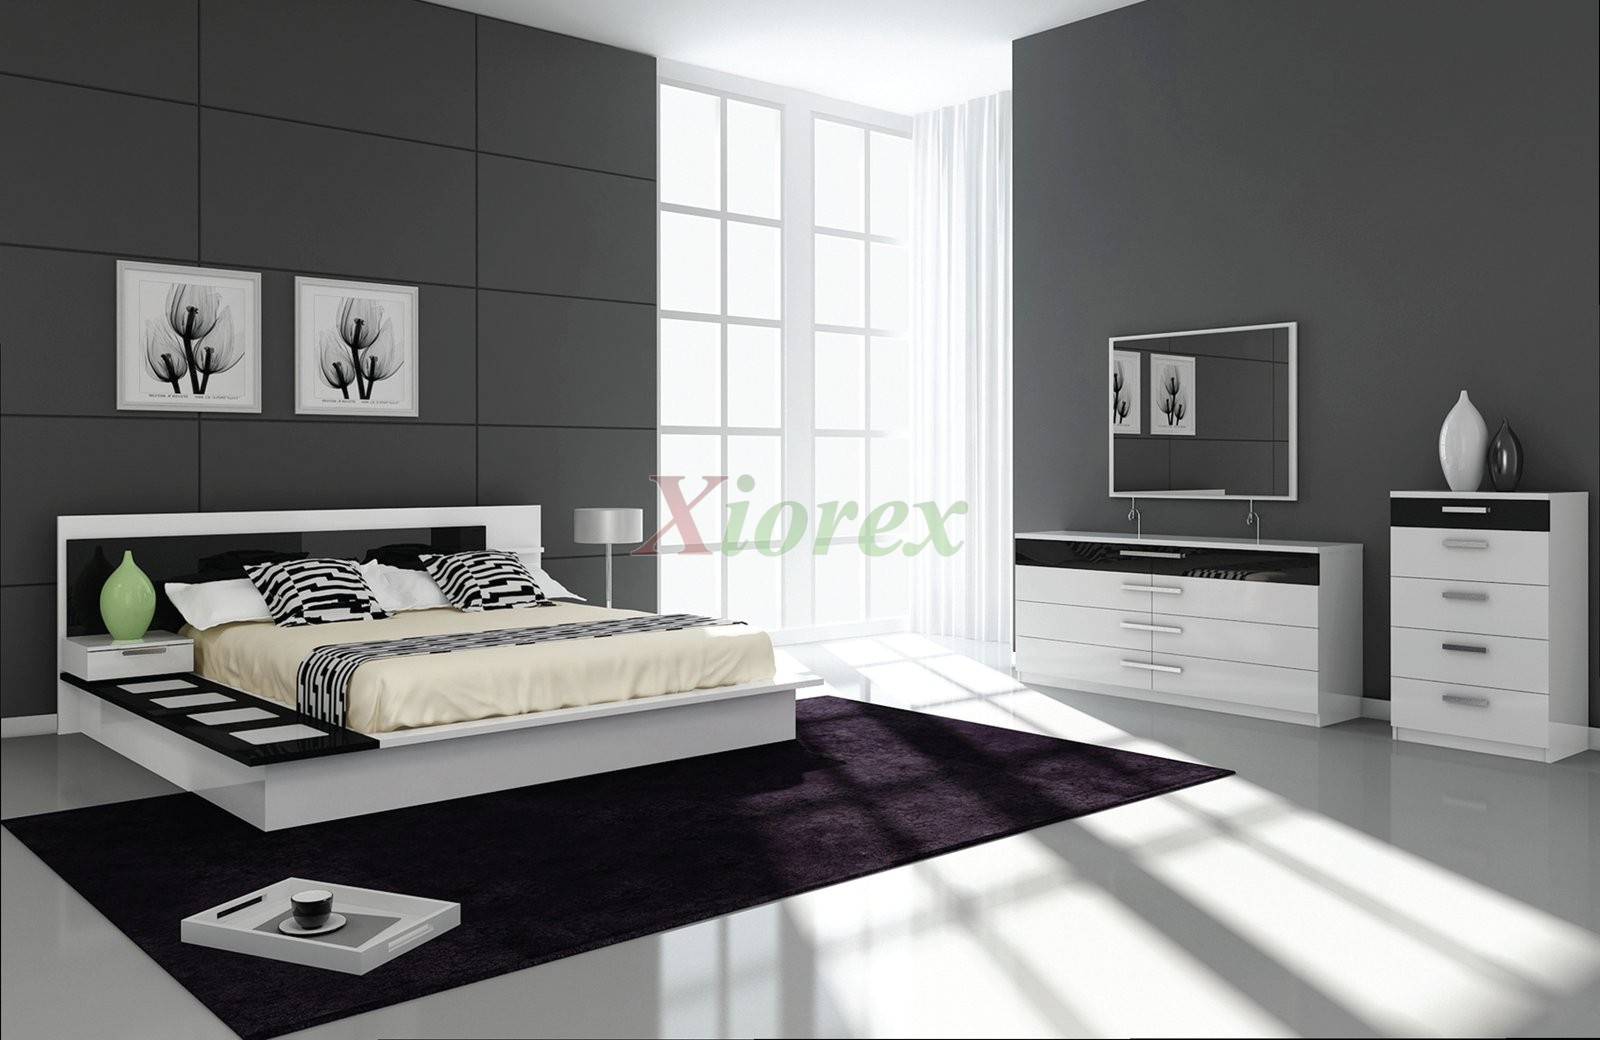 Black Contemporary Bedroom Set draco black and white contemporary bedroom furniture sets | xiorex